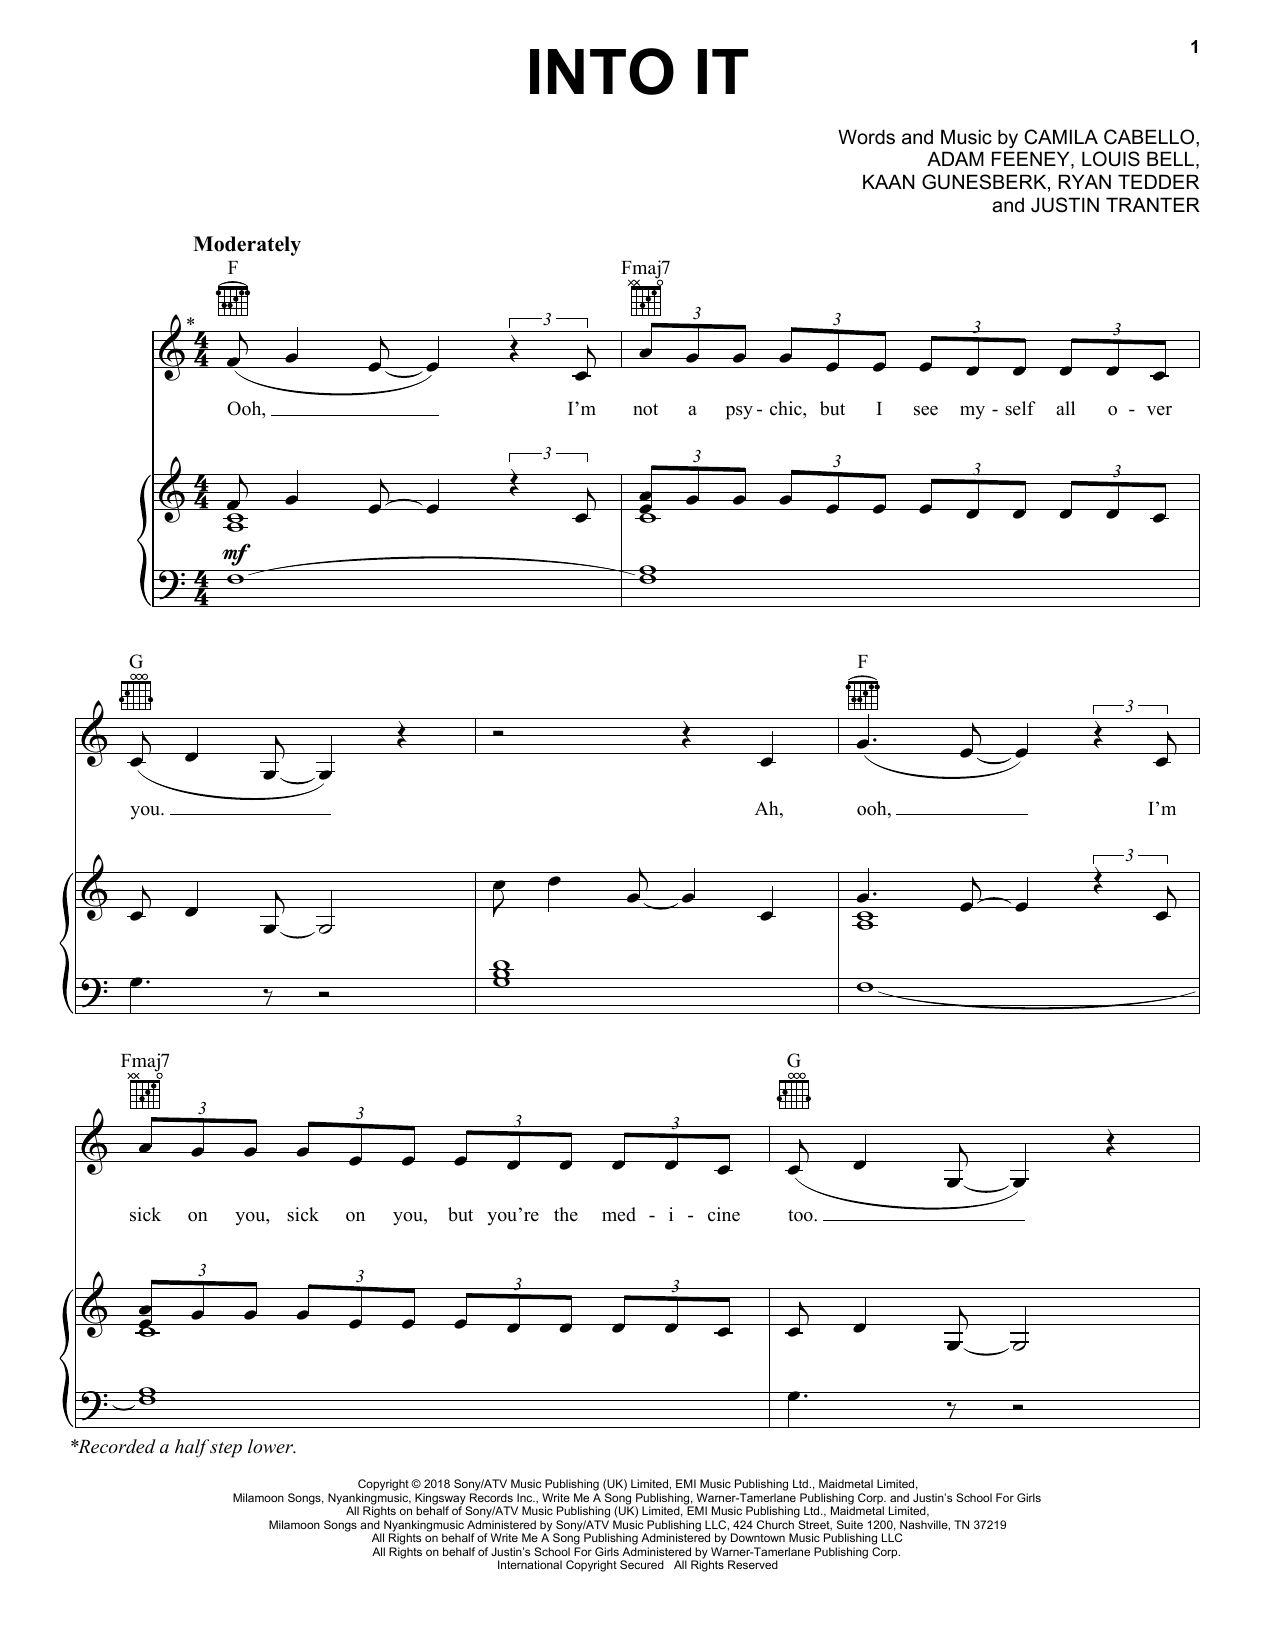 Camila Cabello Into It sheet music notes and chords